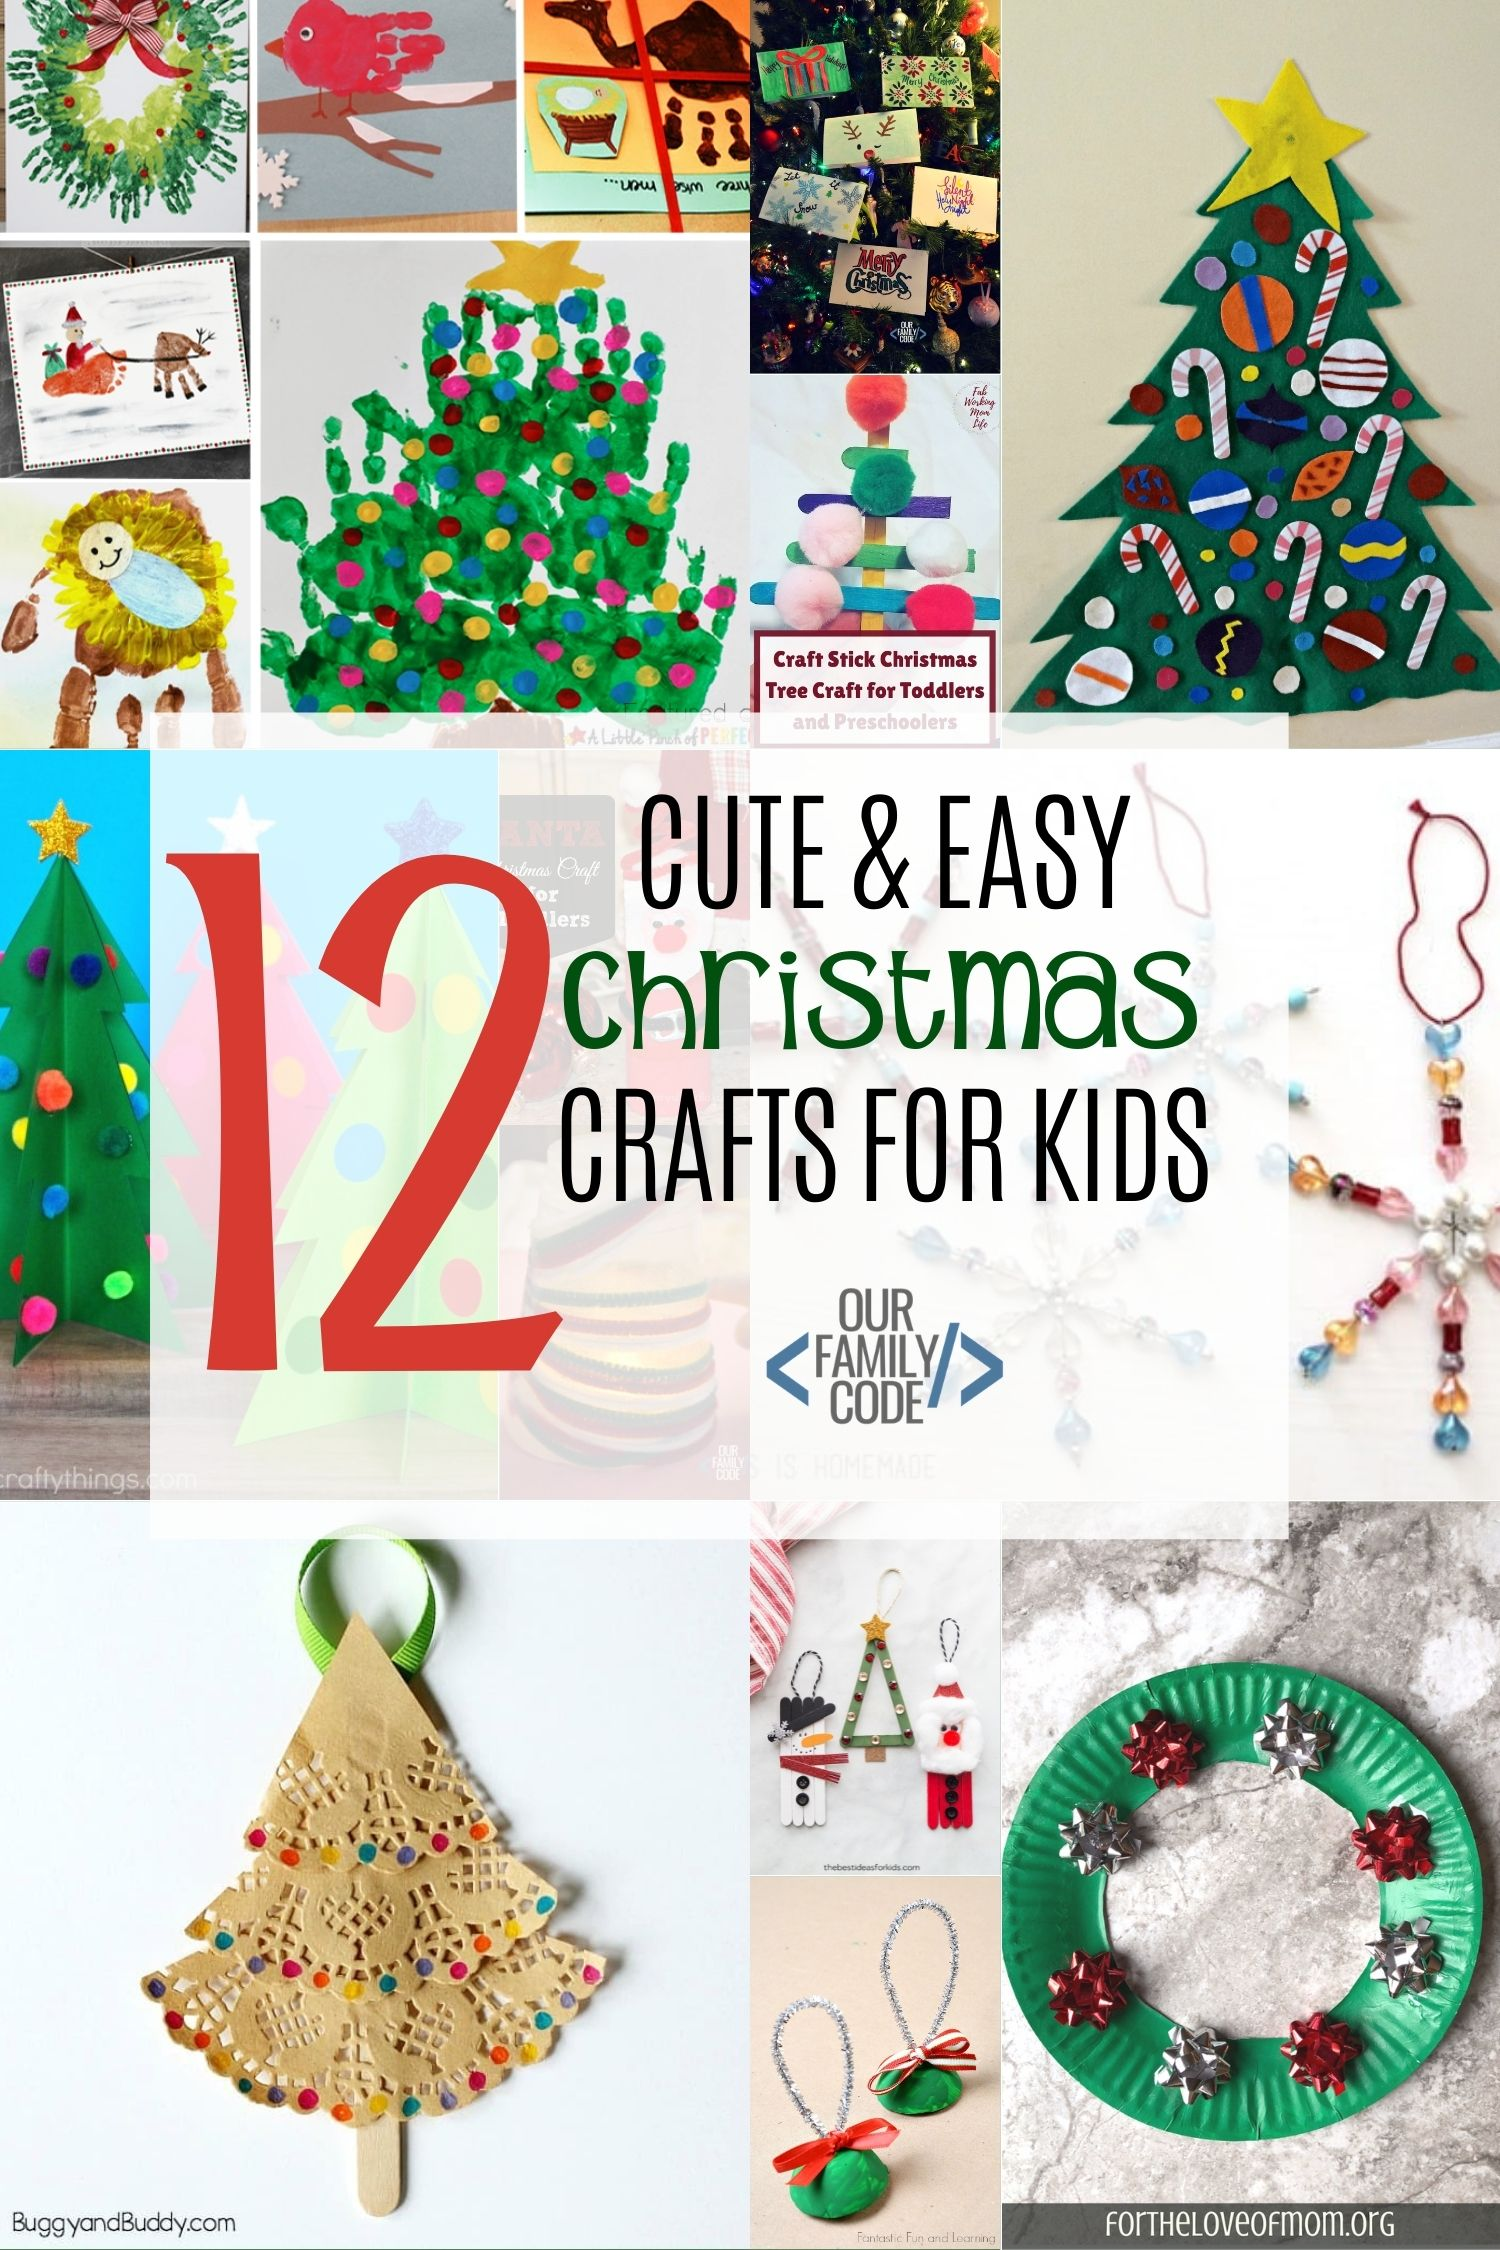 Cute Christmas Ideas For Kids.The Ultimate List Of Easy Christmas Crafts Activities And